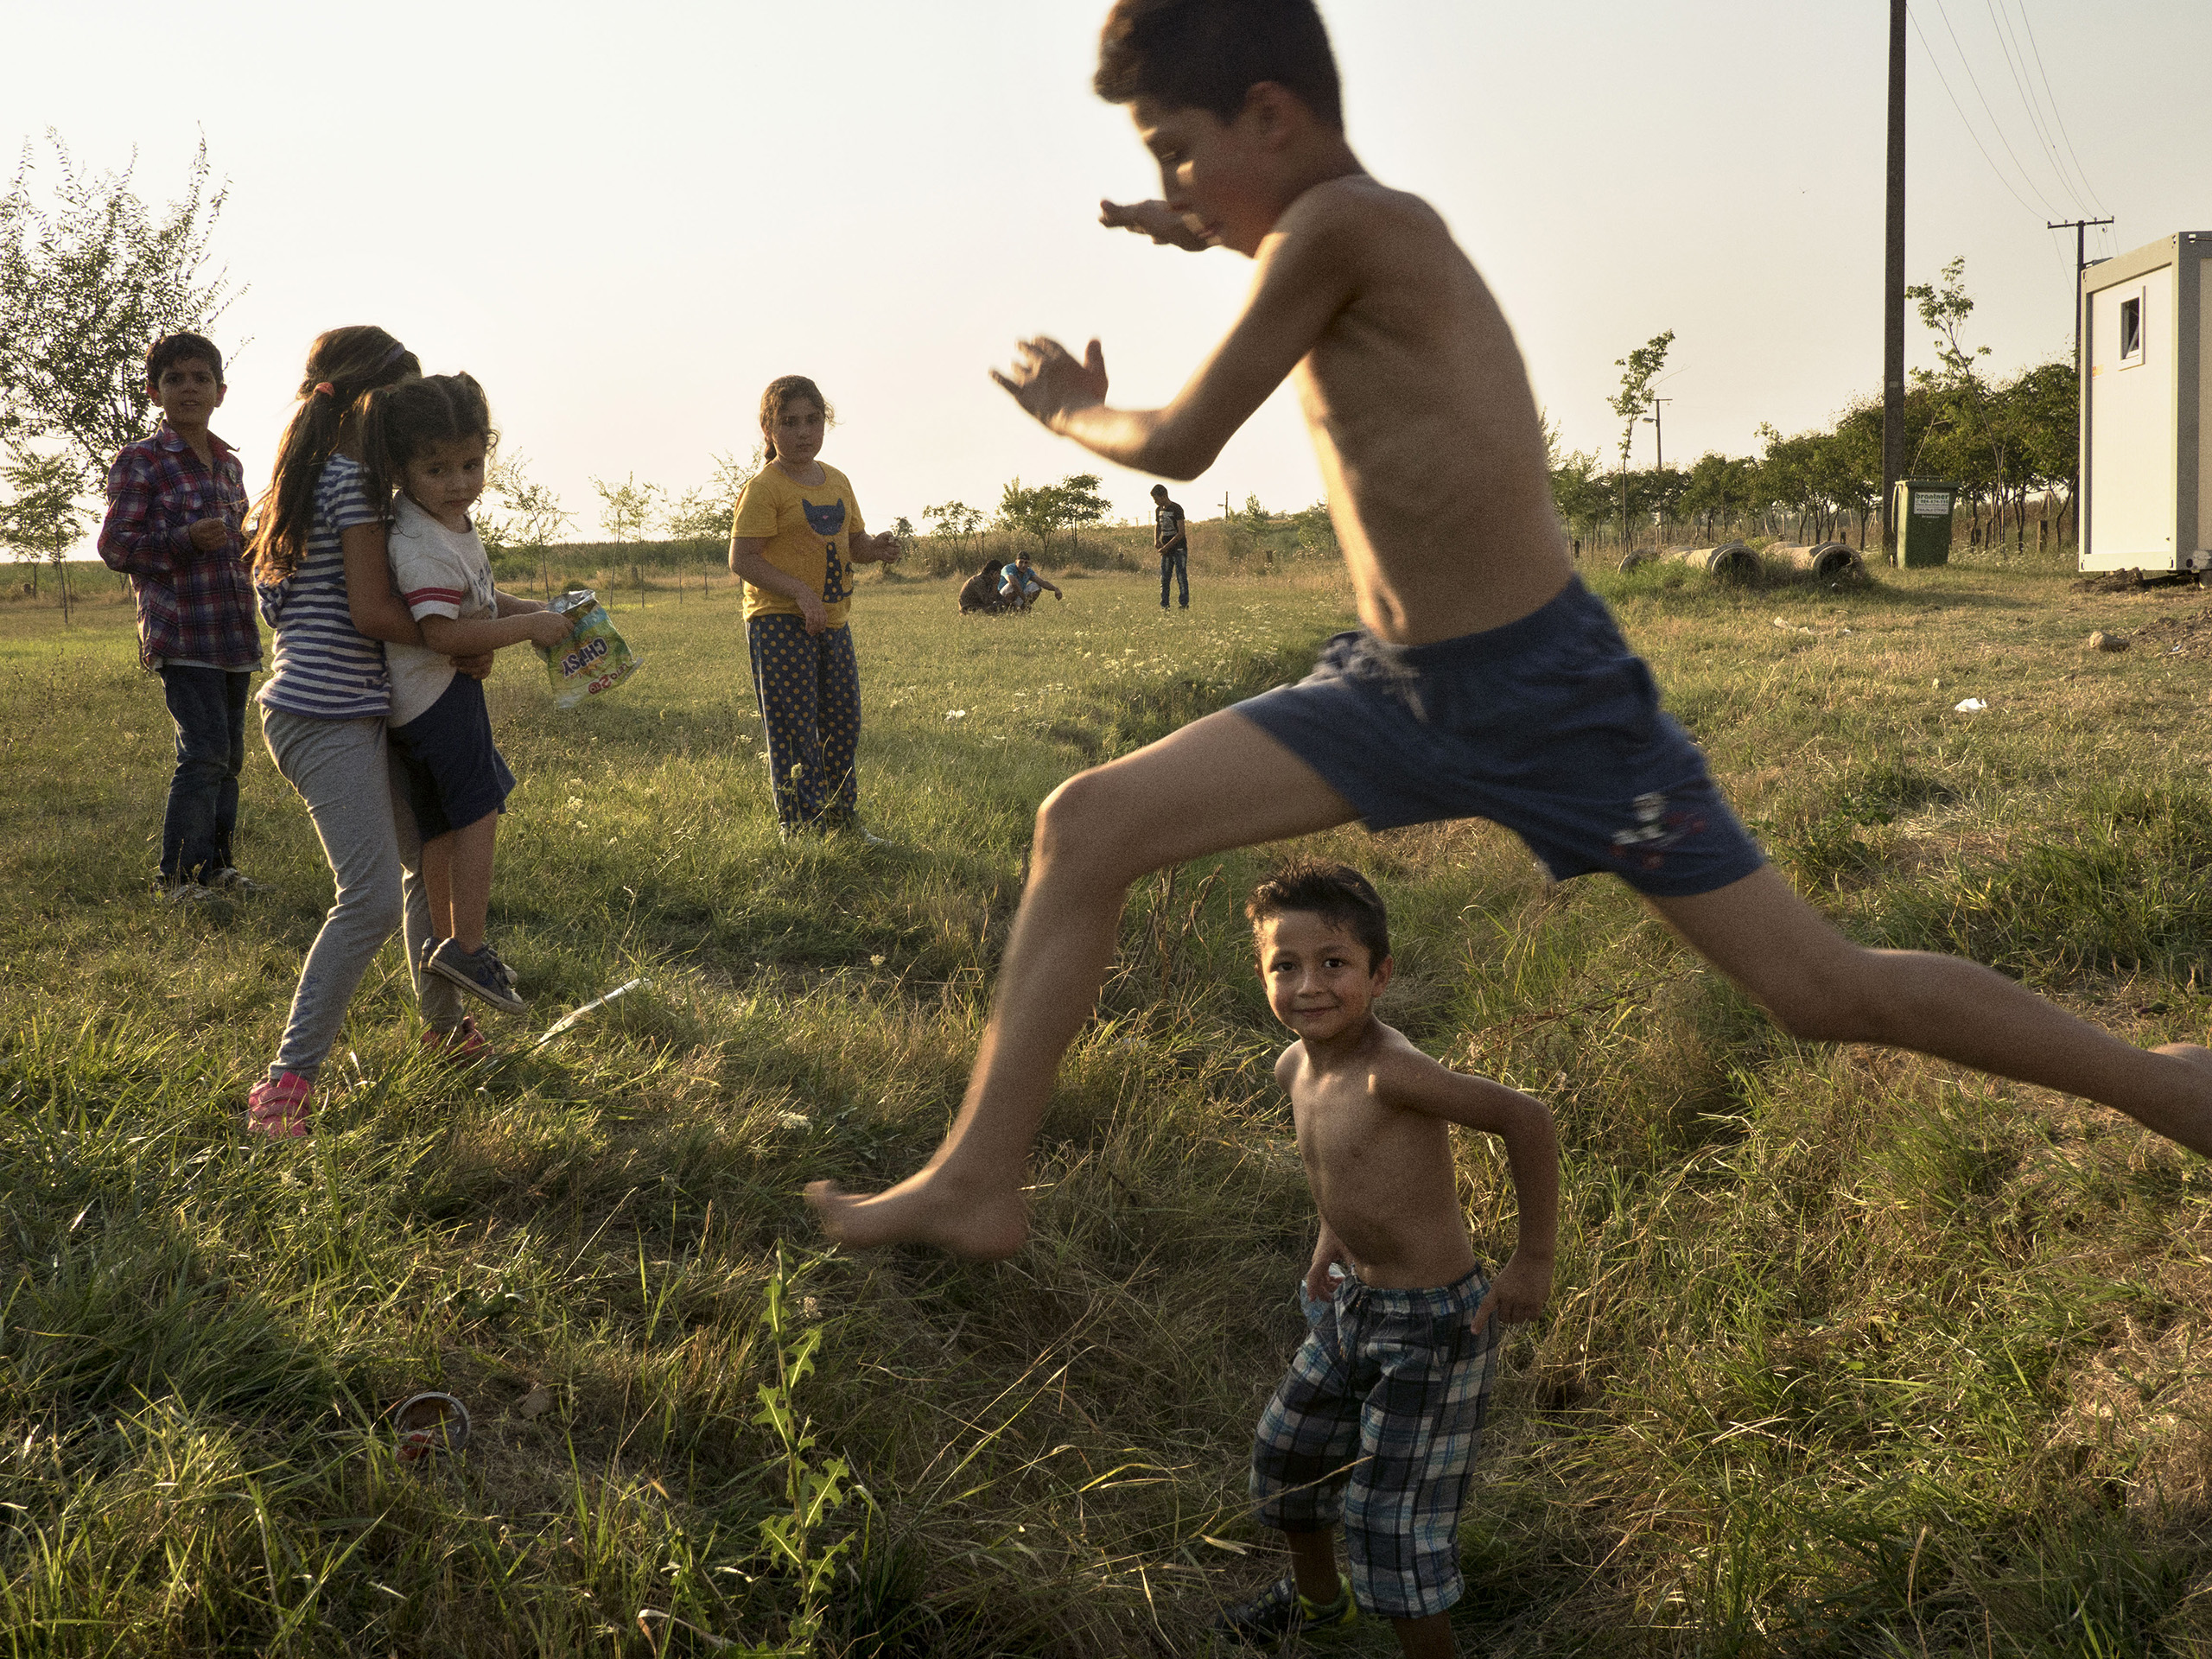 Vasariste, Serbia. August 12, 2015. Syrian families, mostly from Aleppo, in a refugee camp in Vasariste, near the Serbian-Hungarian border.